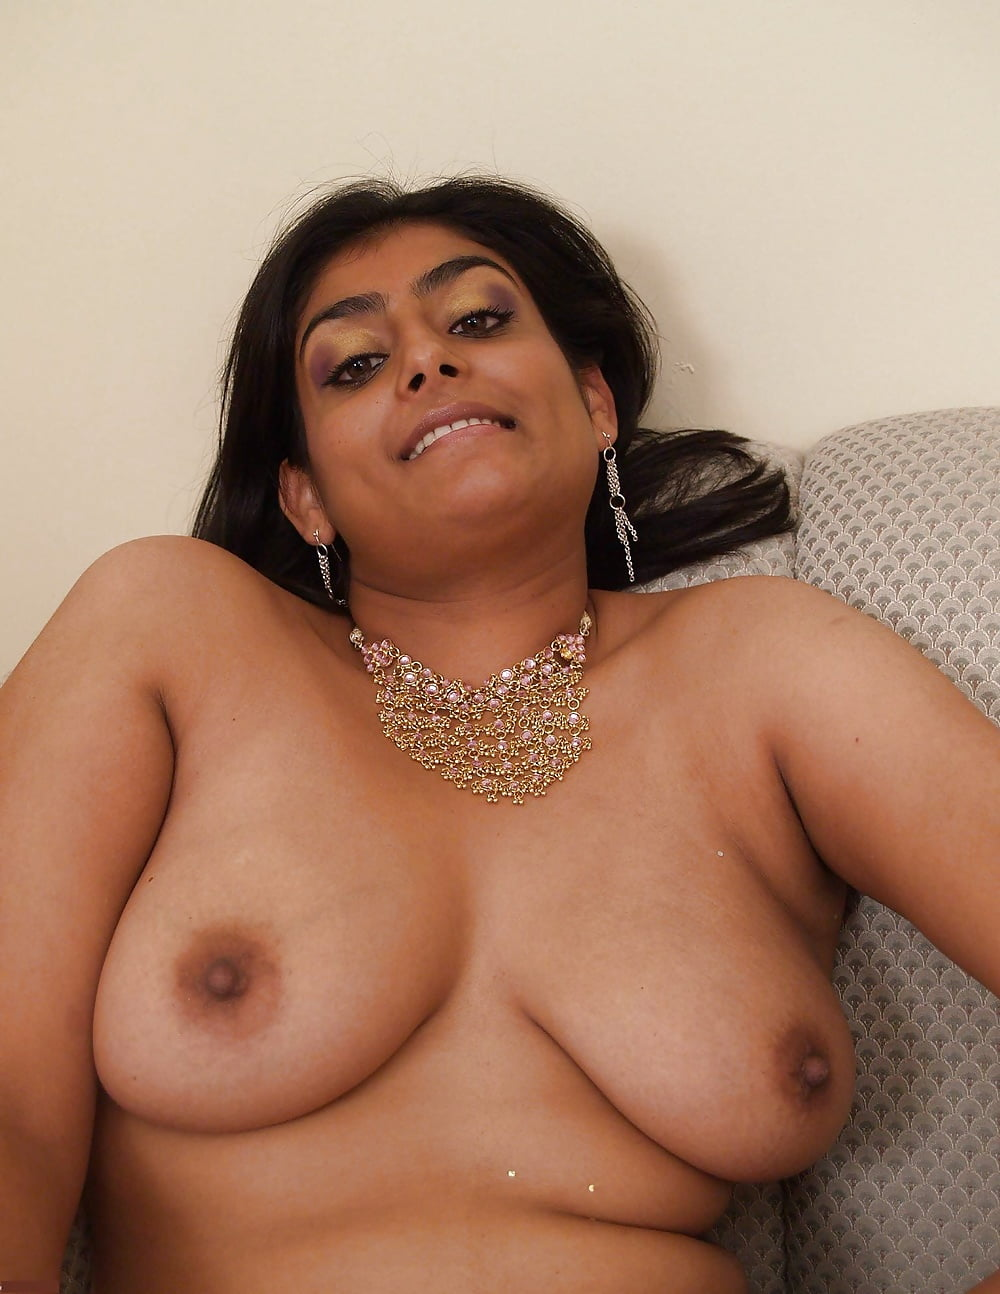 meena-naked-picture